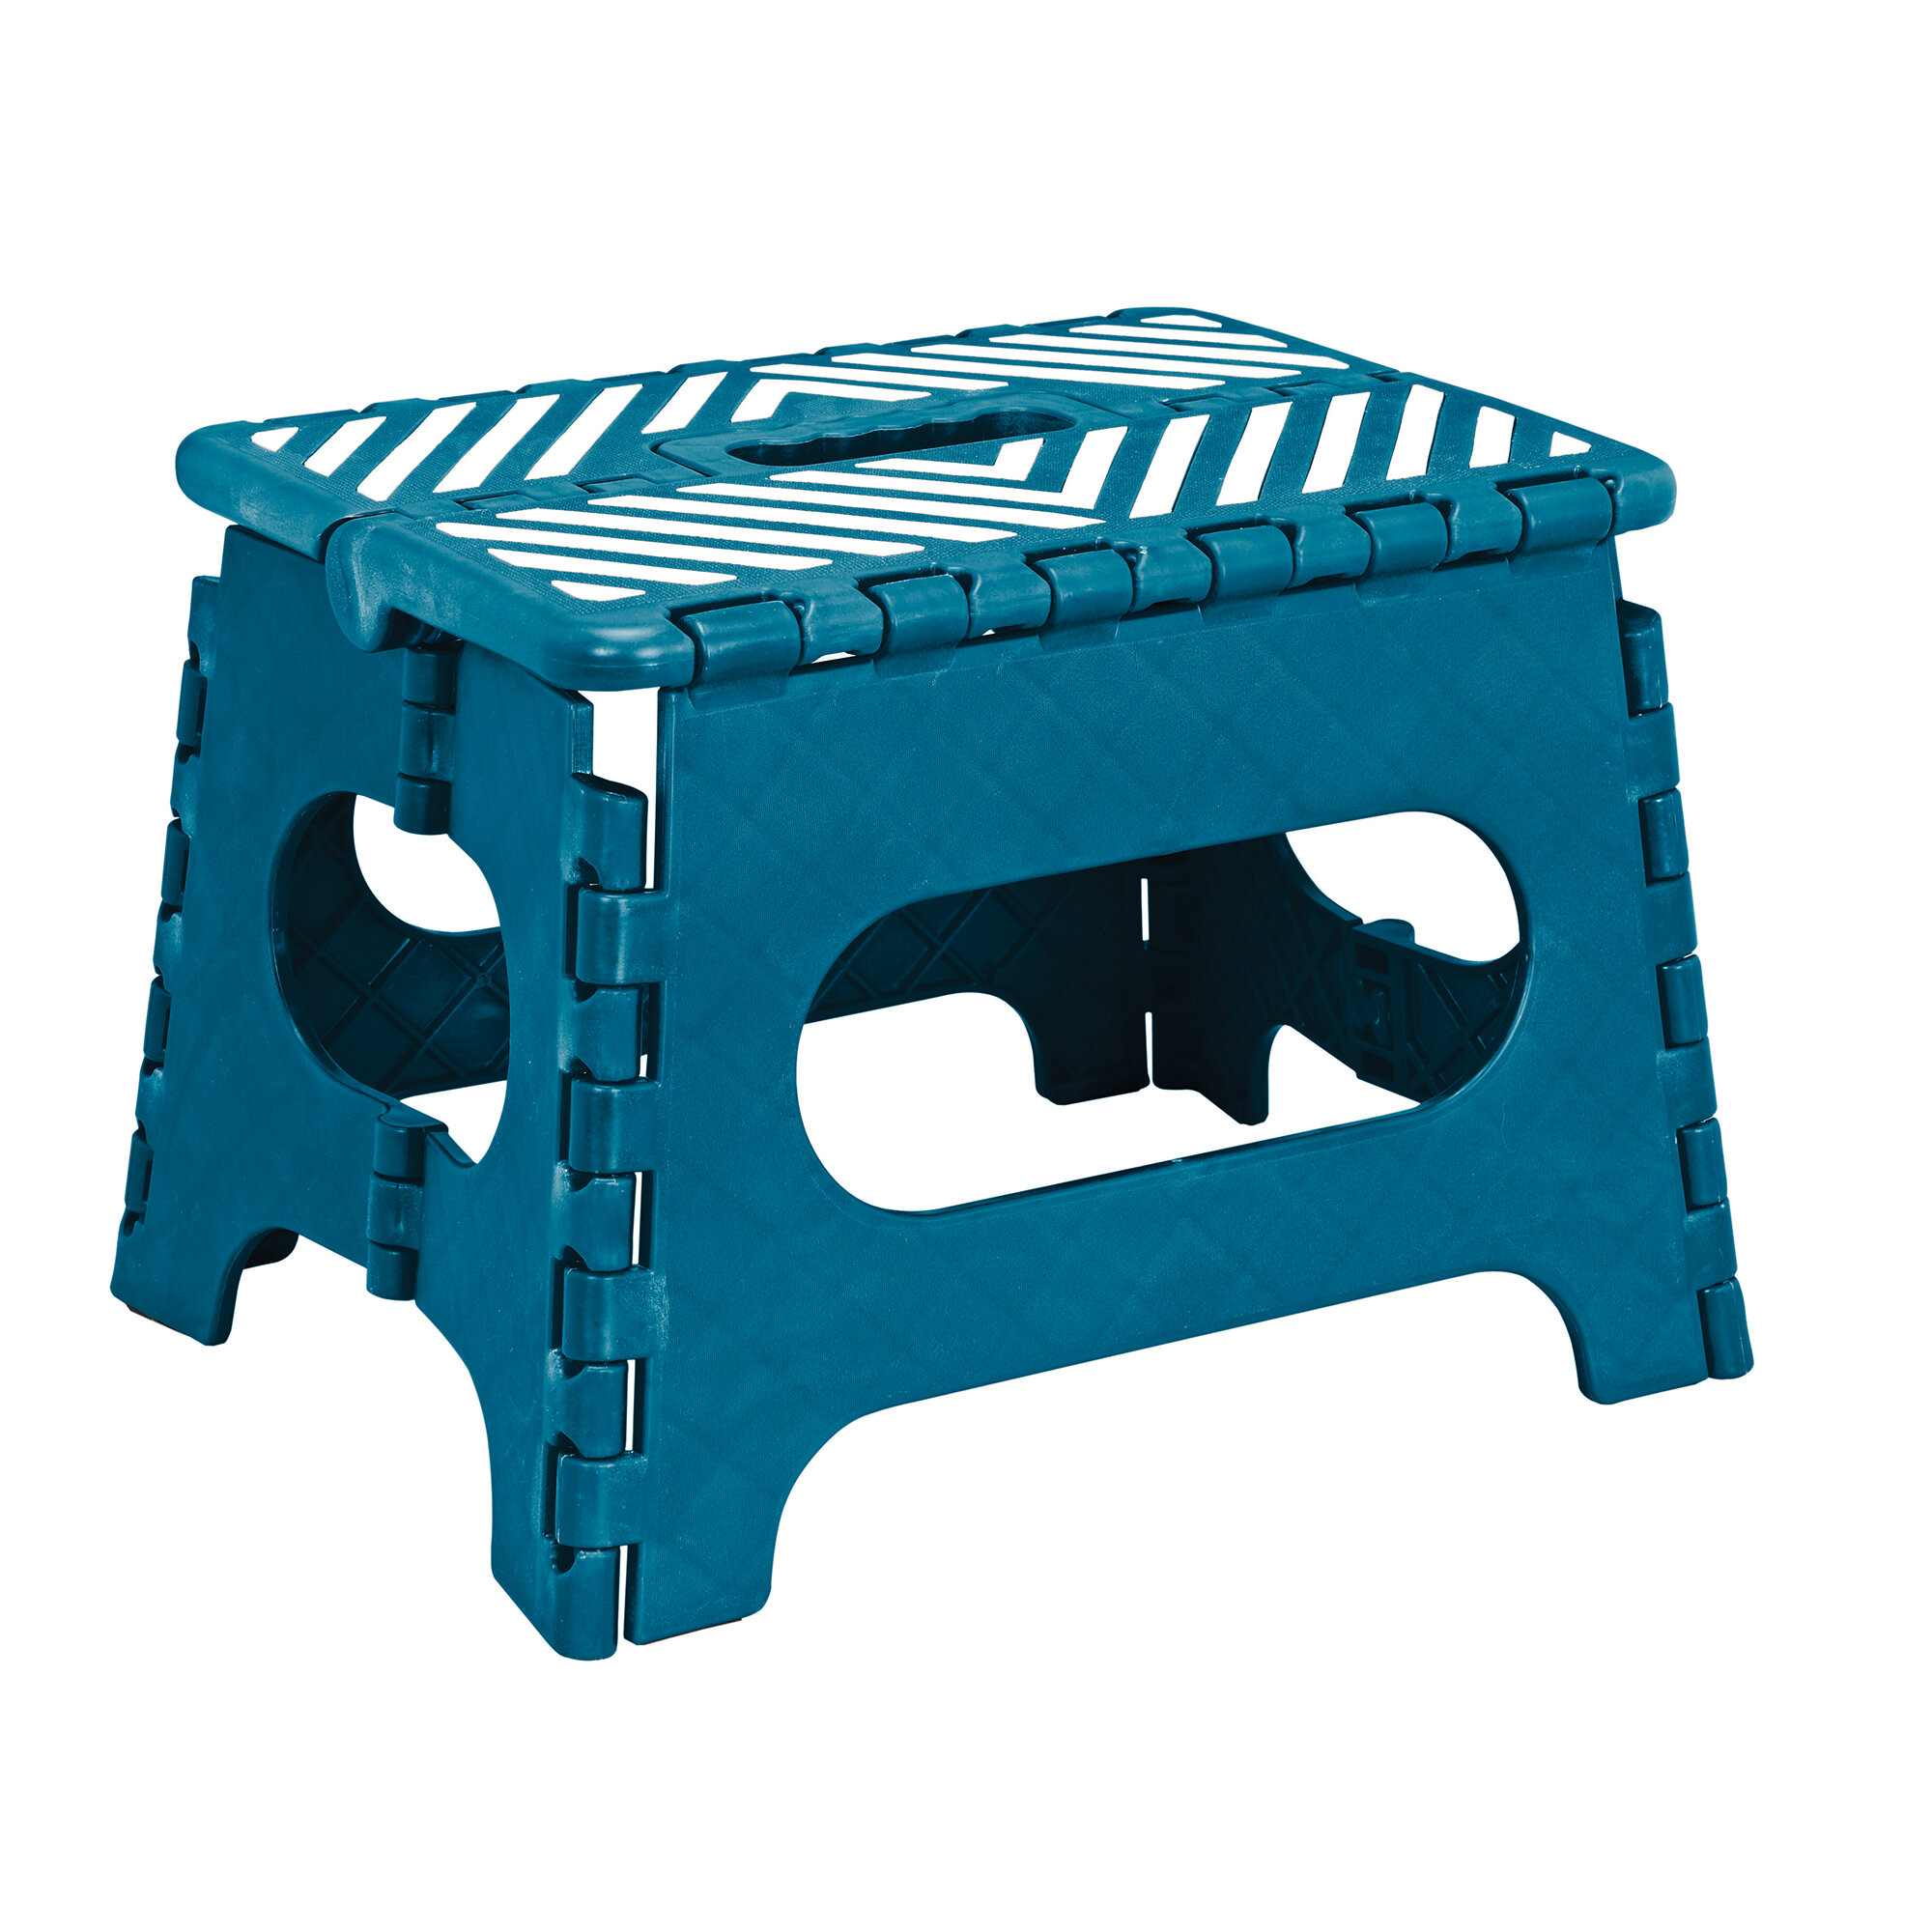 Simplify 1-Step Plastic Folding Step Stool with 200 lb. Load ...